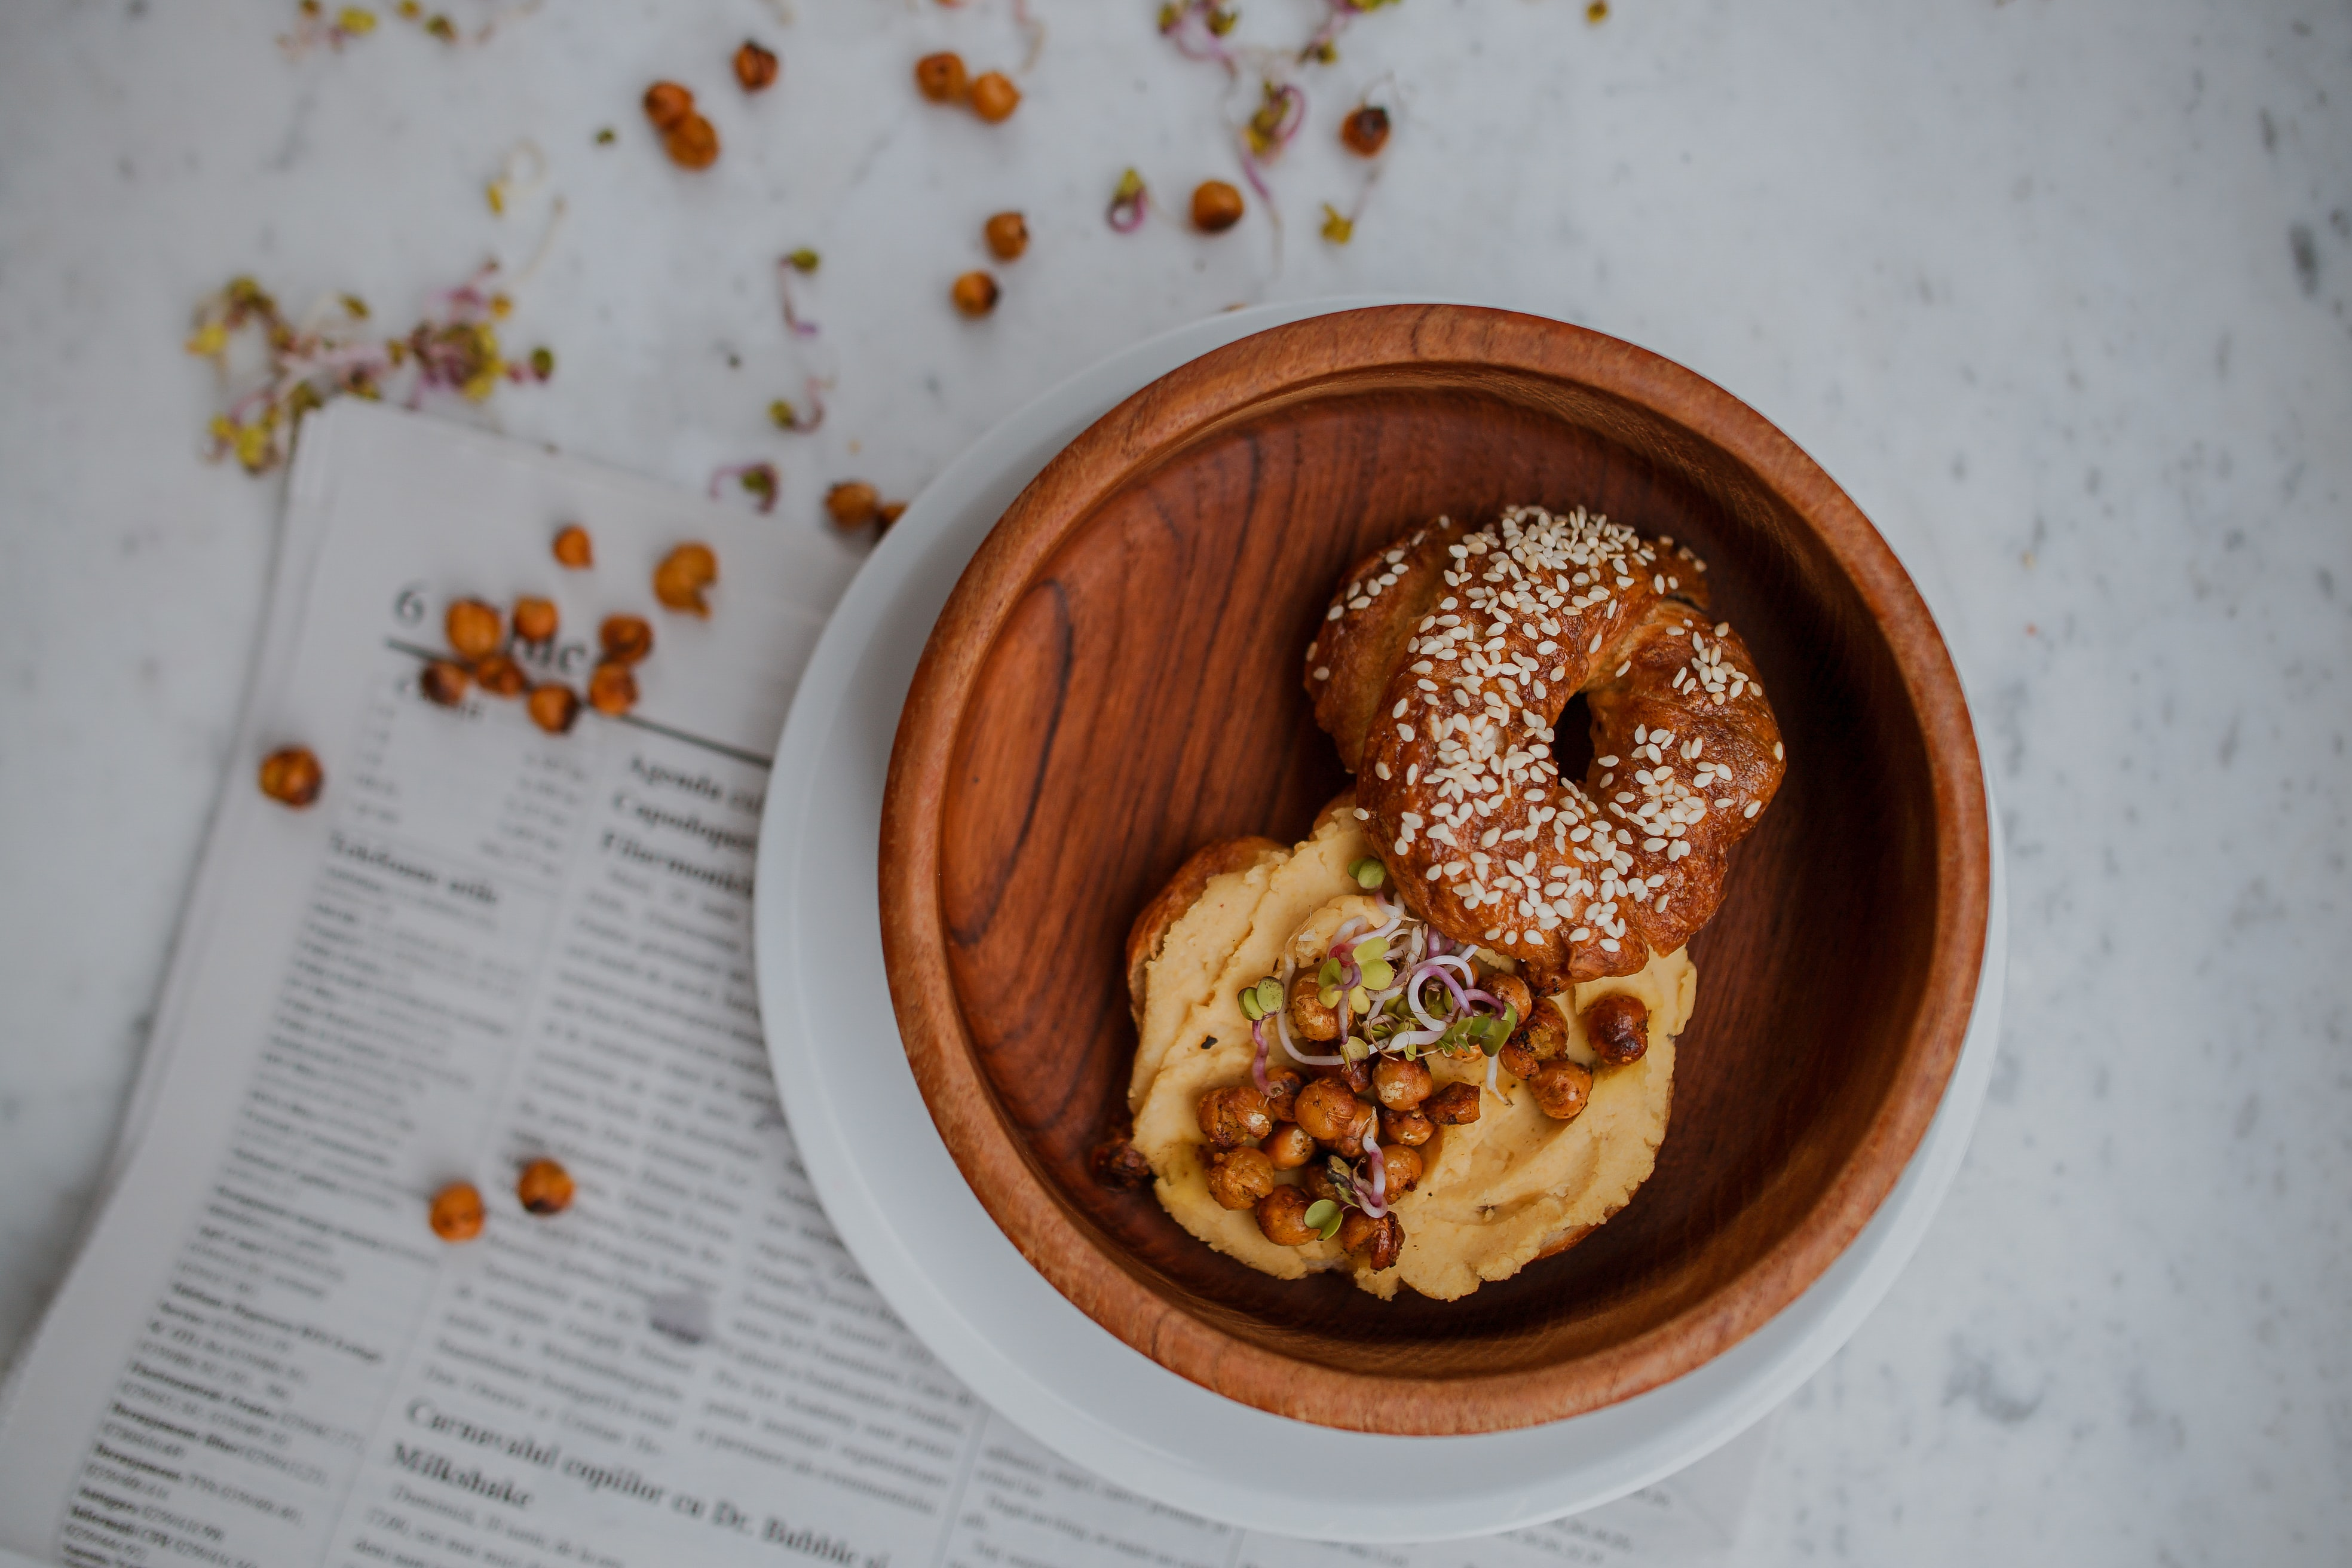 Bowl of bagel with hummus and roasted chickpeas on a Sunday newspaper